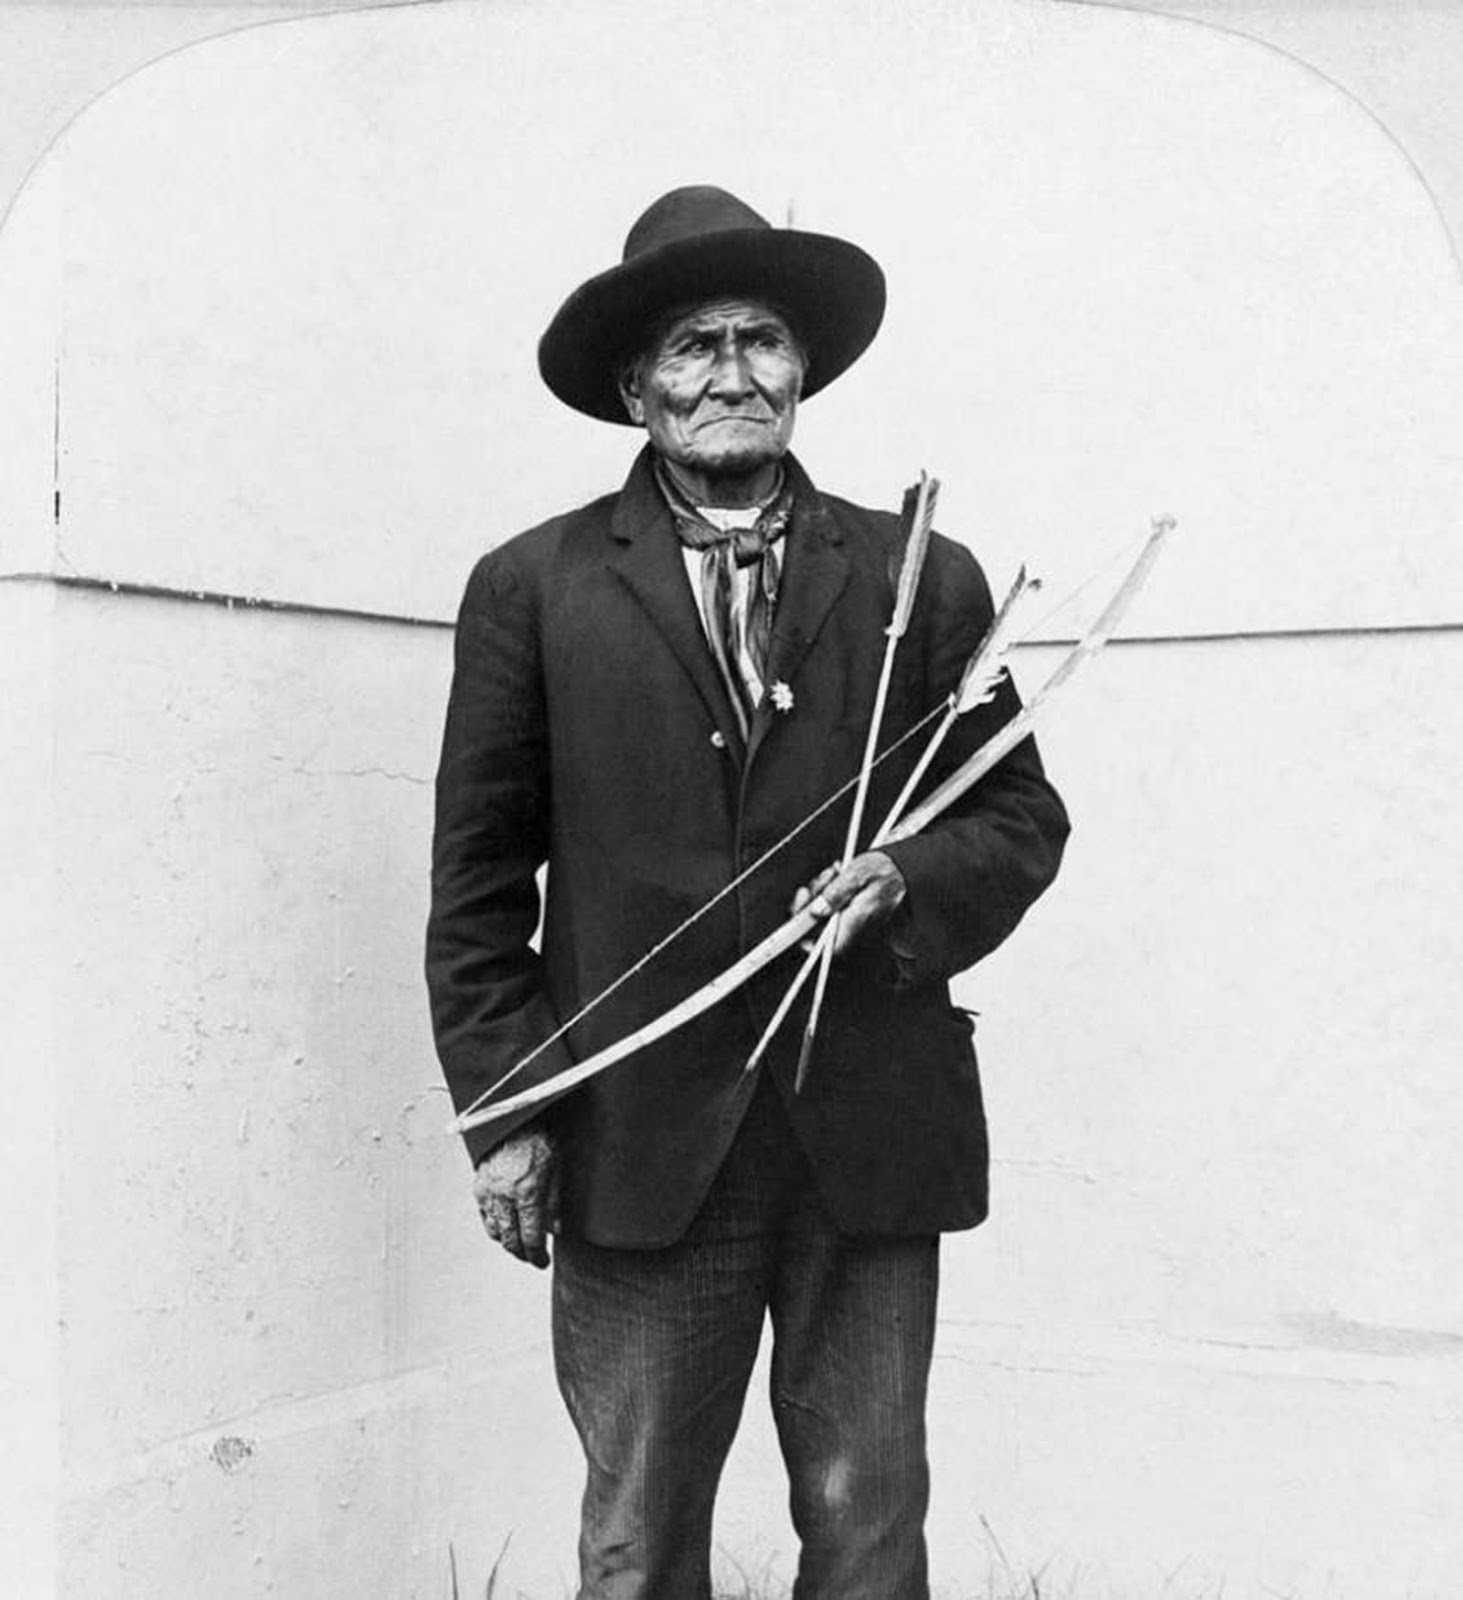 Not far from Filipino exhibition at the 1904 St. Louis World's Fair, the Apache hero Geronimo (pictured) would pose for tourists and signs autographs. Geronimo and several other Native American chiefs were also 'on display' at the event.